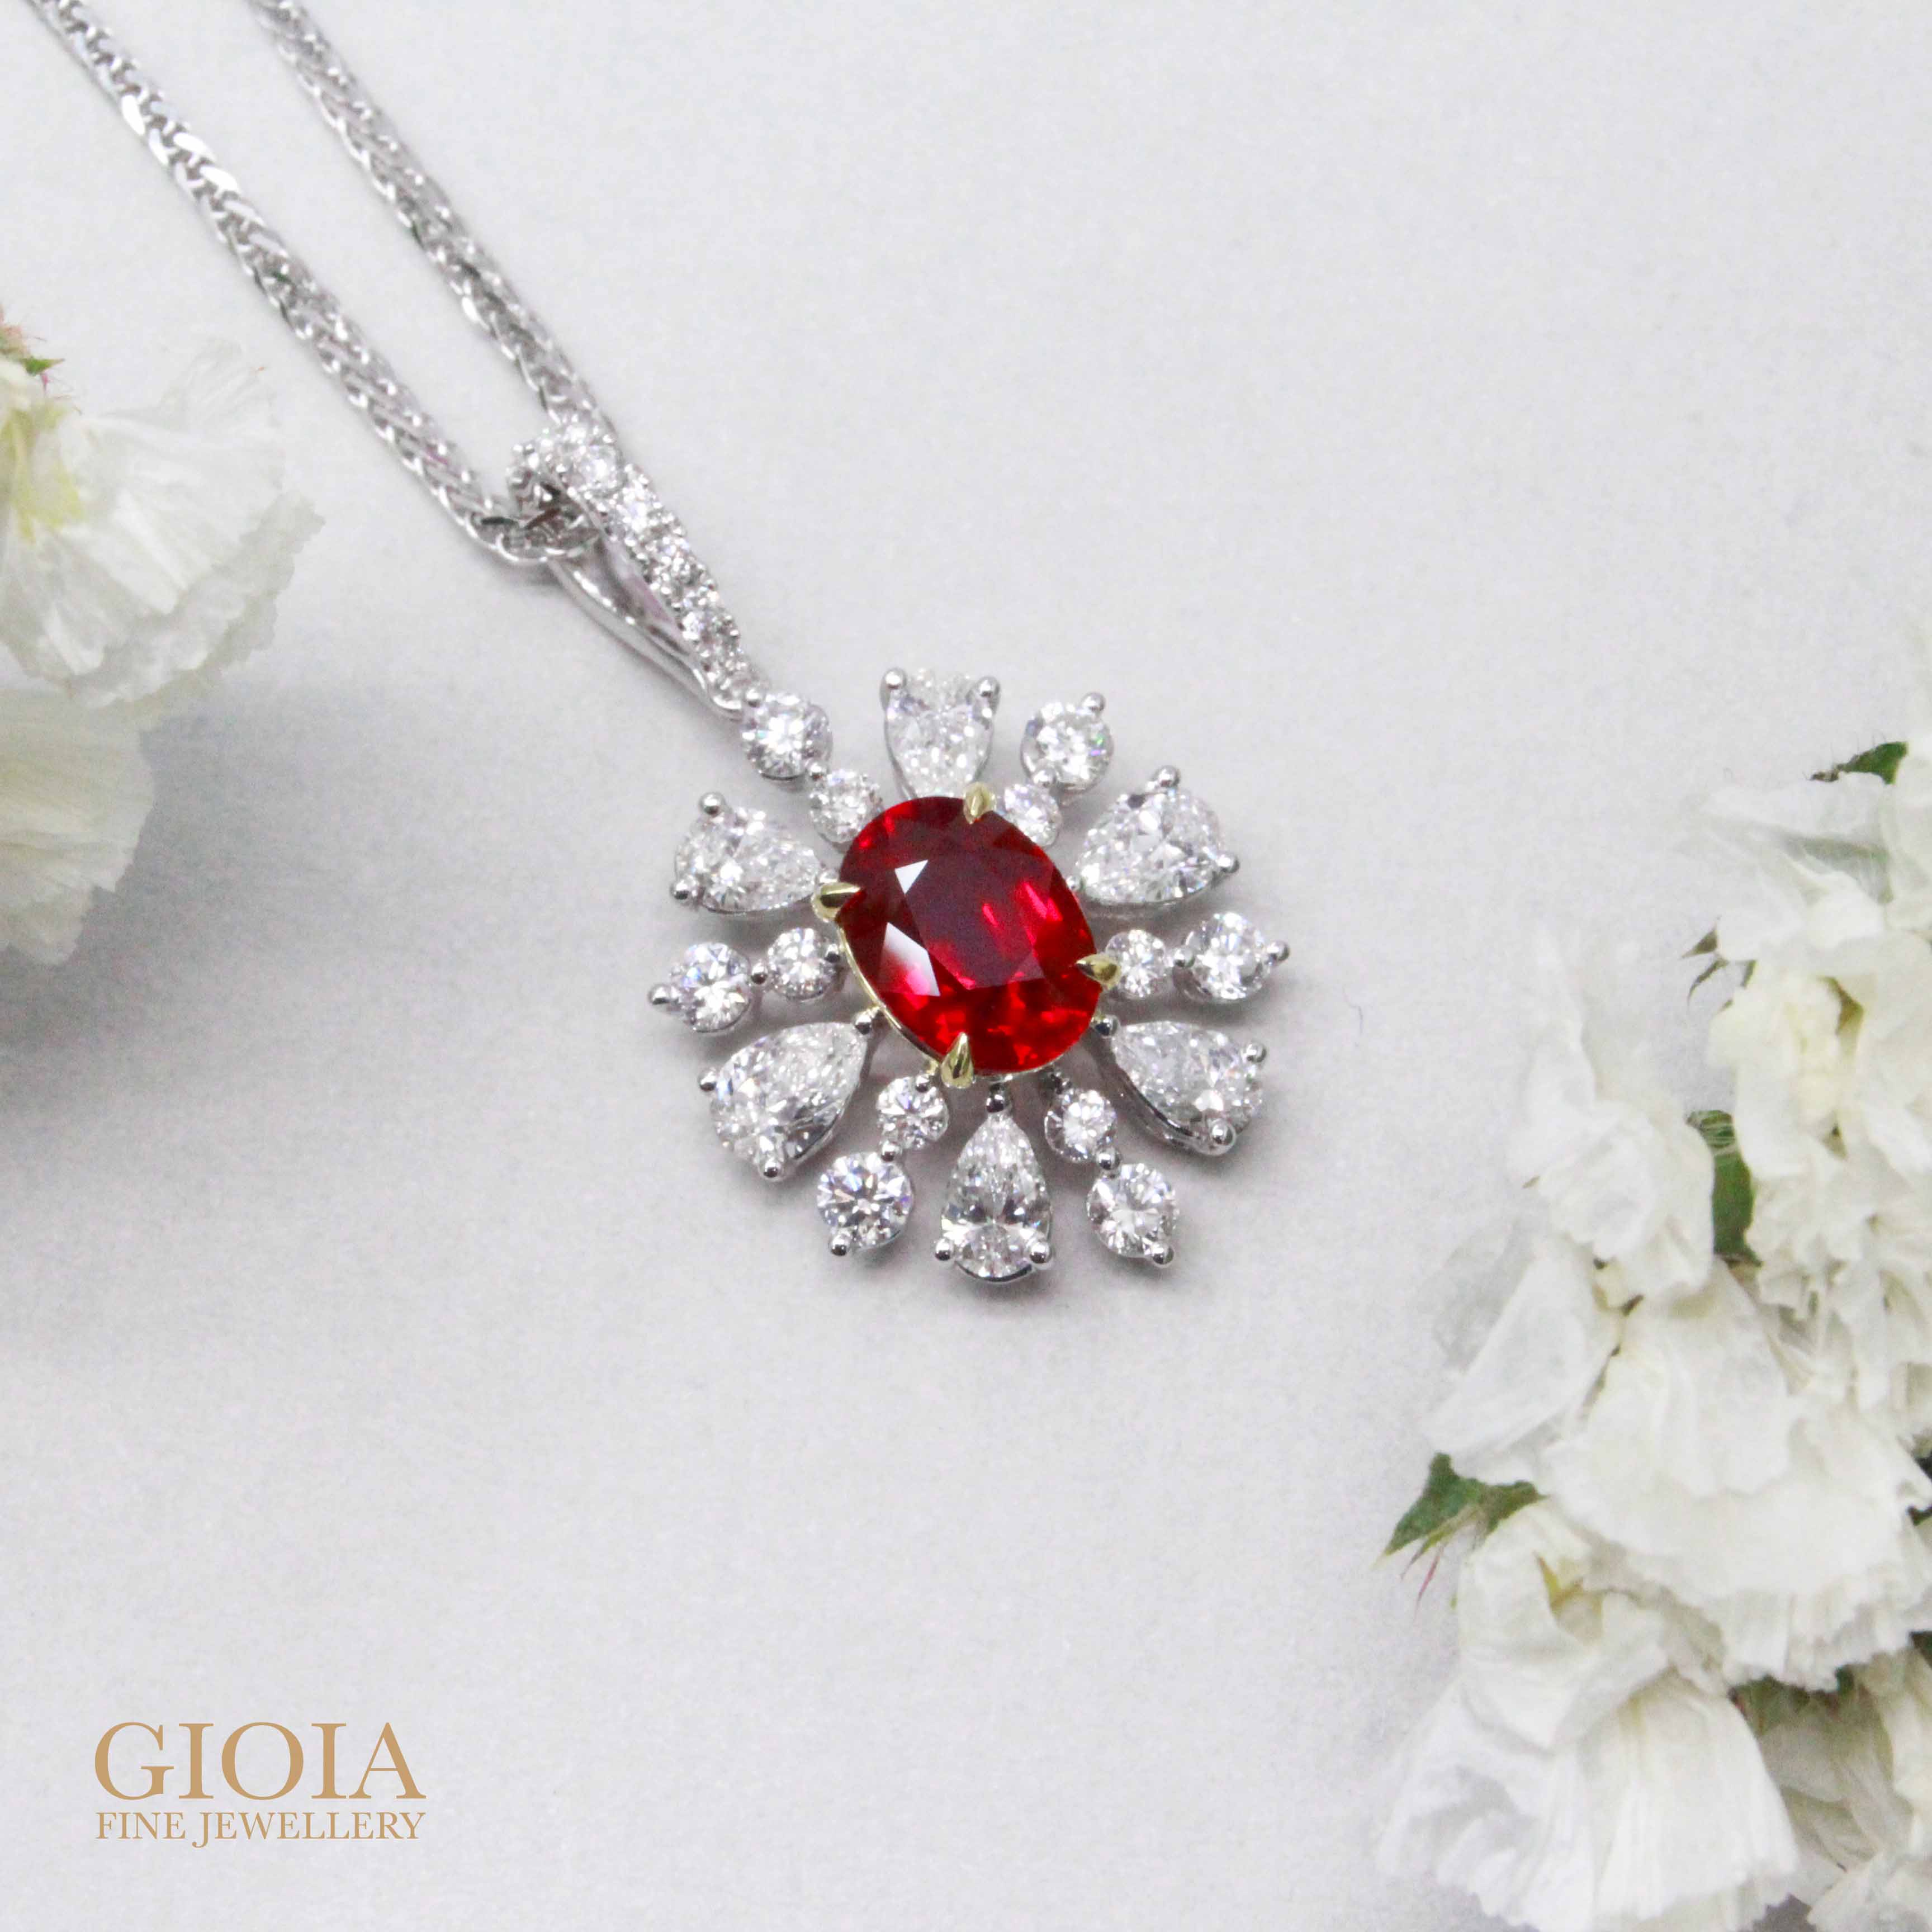 Pigeon Blood Ruby Pendant - Customised unheated pigeon blood ruby with diamond   Local Singapore Trusted Jeweler